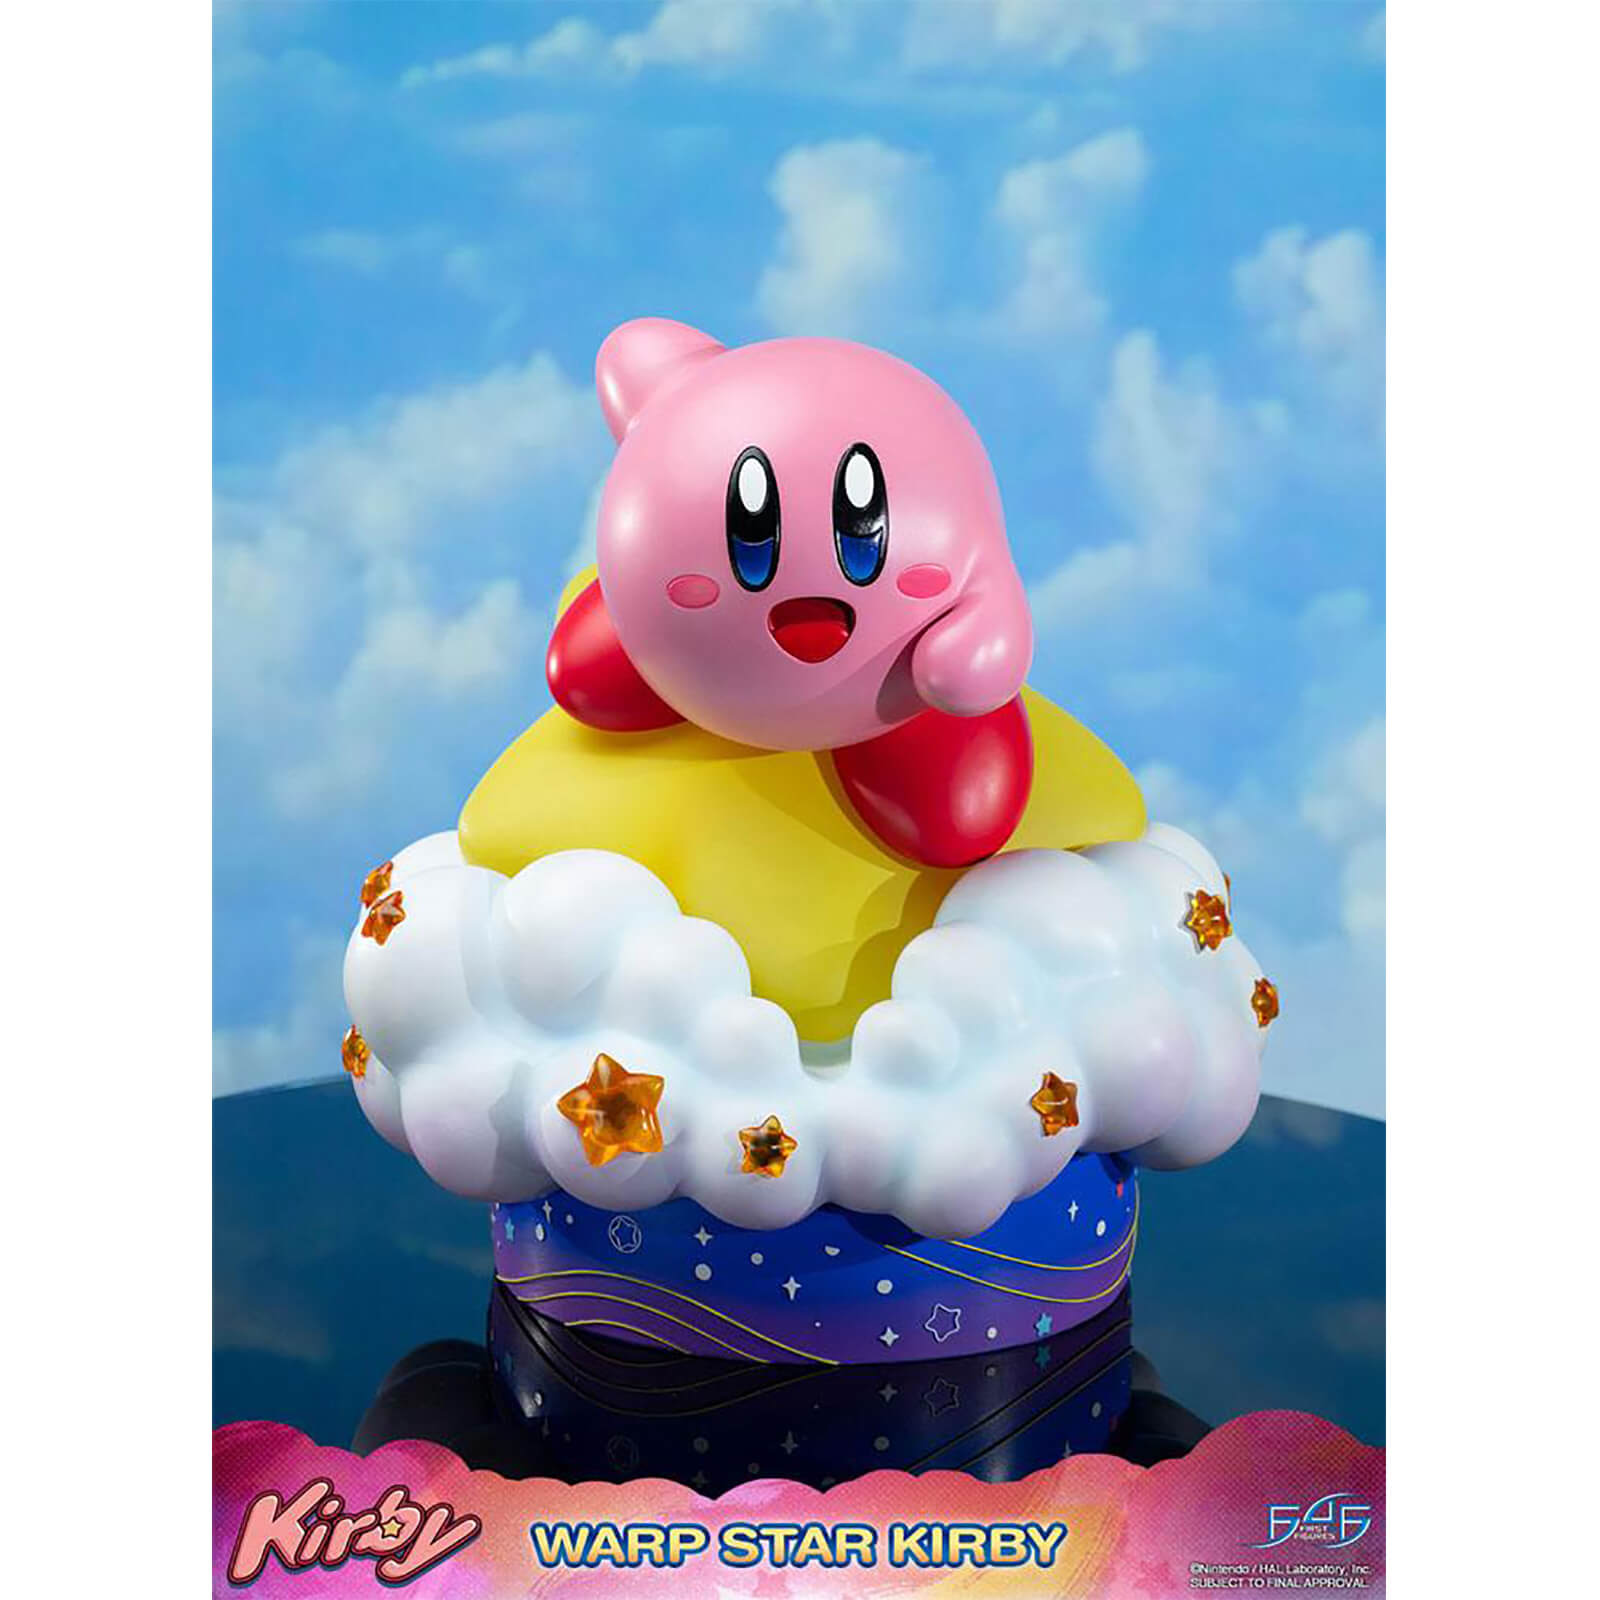 Image of First 4 Figures Kirby Resin Statue - Wrap Star Kirby